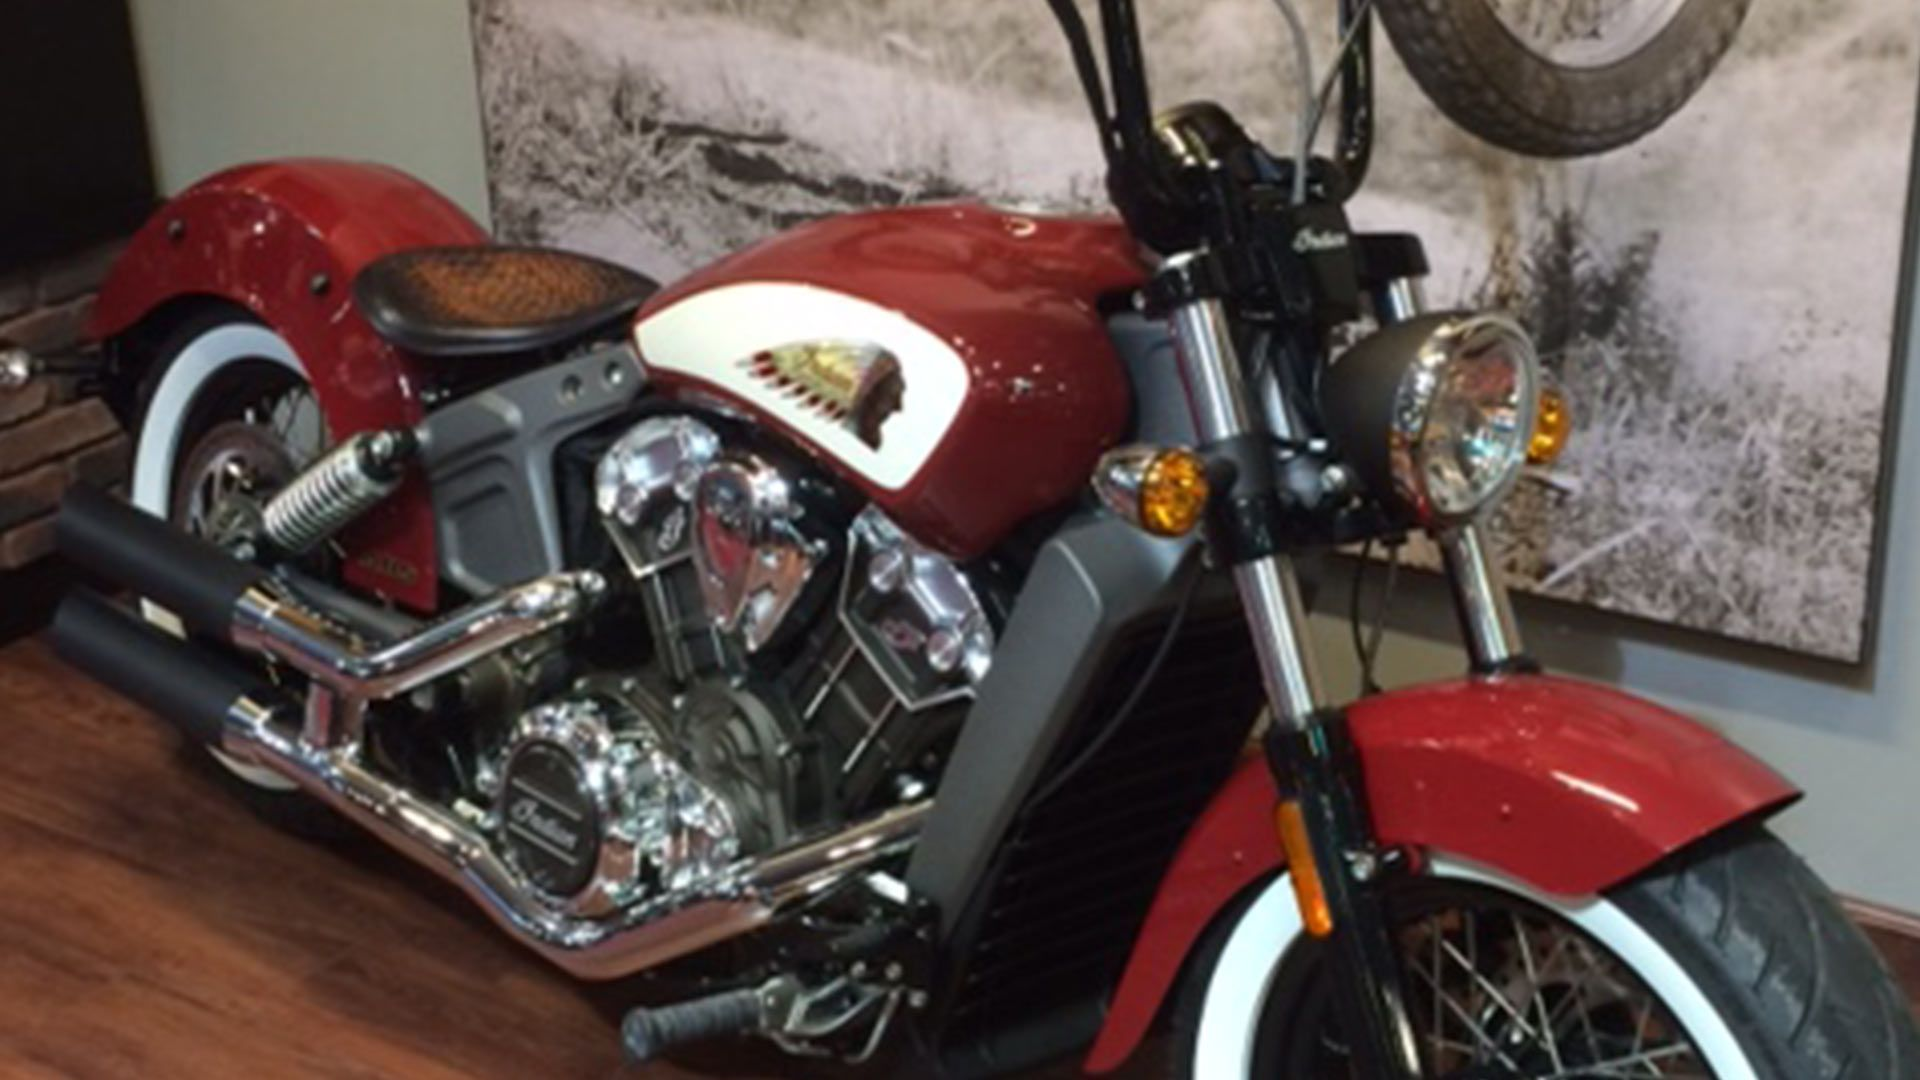 Scout Bobber Sound Of A Monster Project Scout Bobber Indian Scout Scout [ 1080 x 1920 Pixel ]